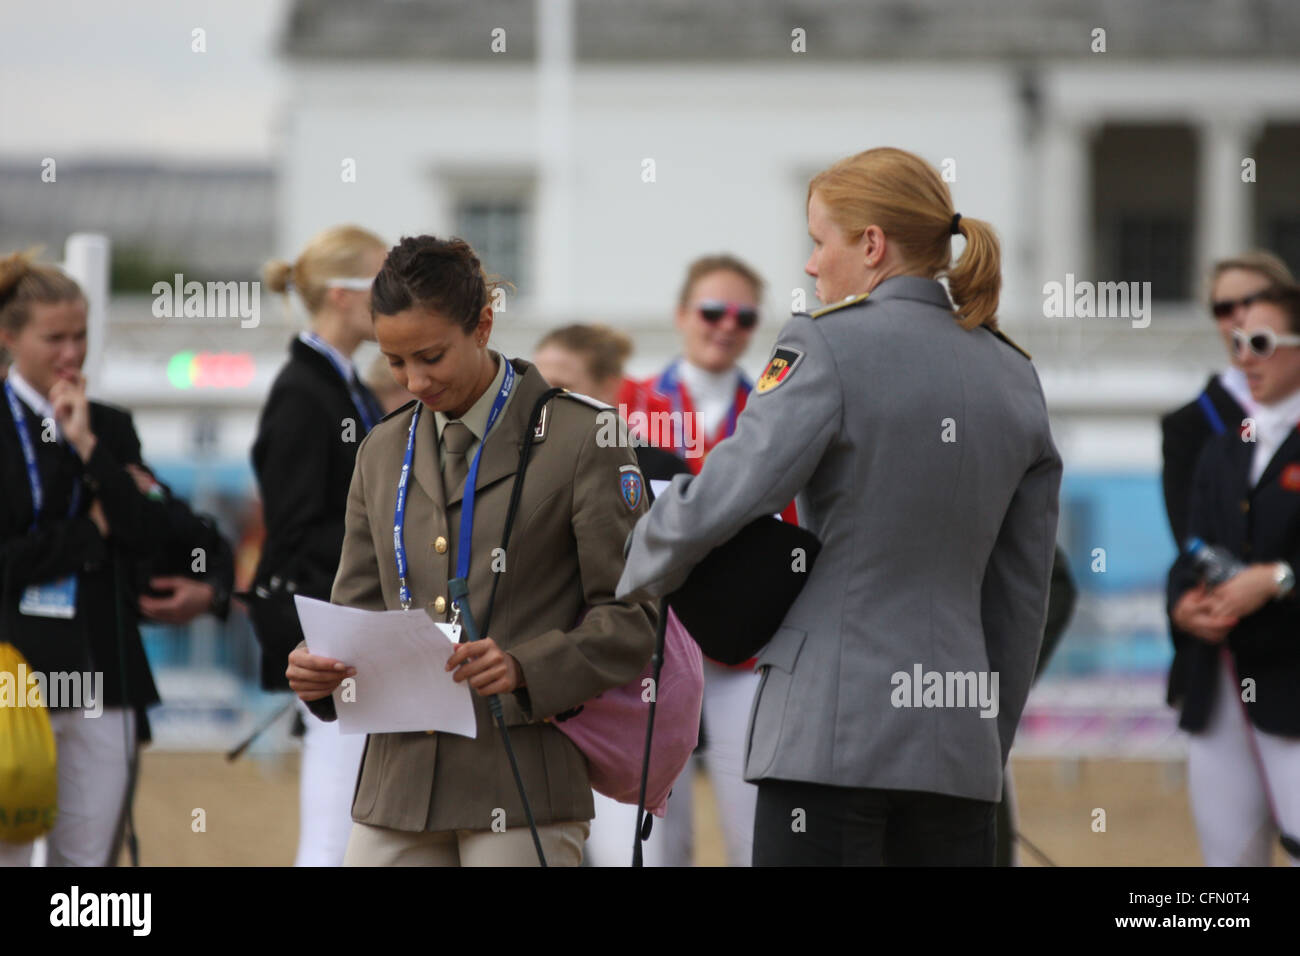 Lavinia Bonessio of Italy in the show jumping at the womens modern pentathlon at Greenwich park. - Stock Image